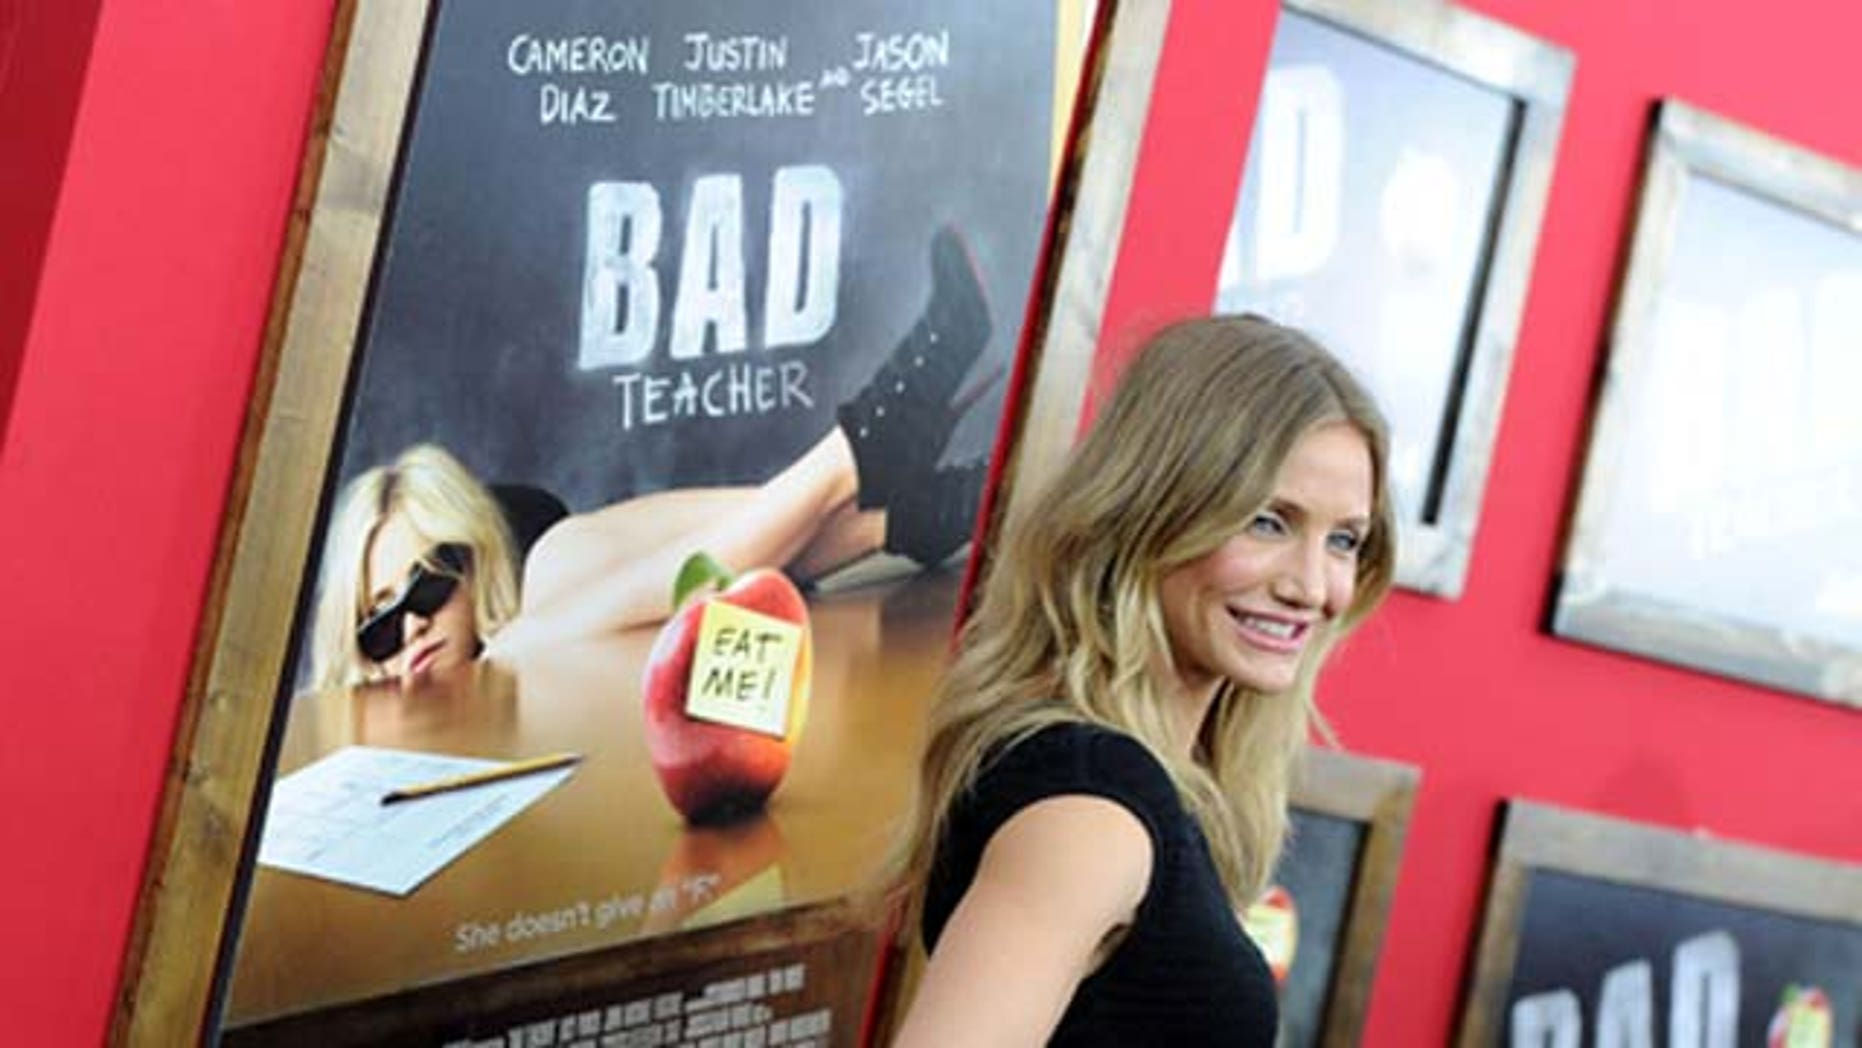 June 20:  Actress Cameron Diaz attends the premiere of 'Bad Teacher' at the Ziegfeld Theatre in New York City.